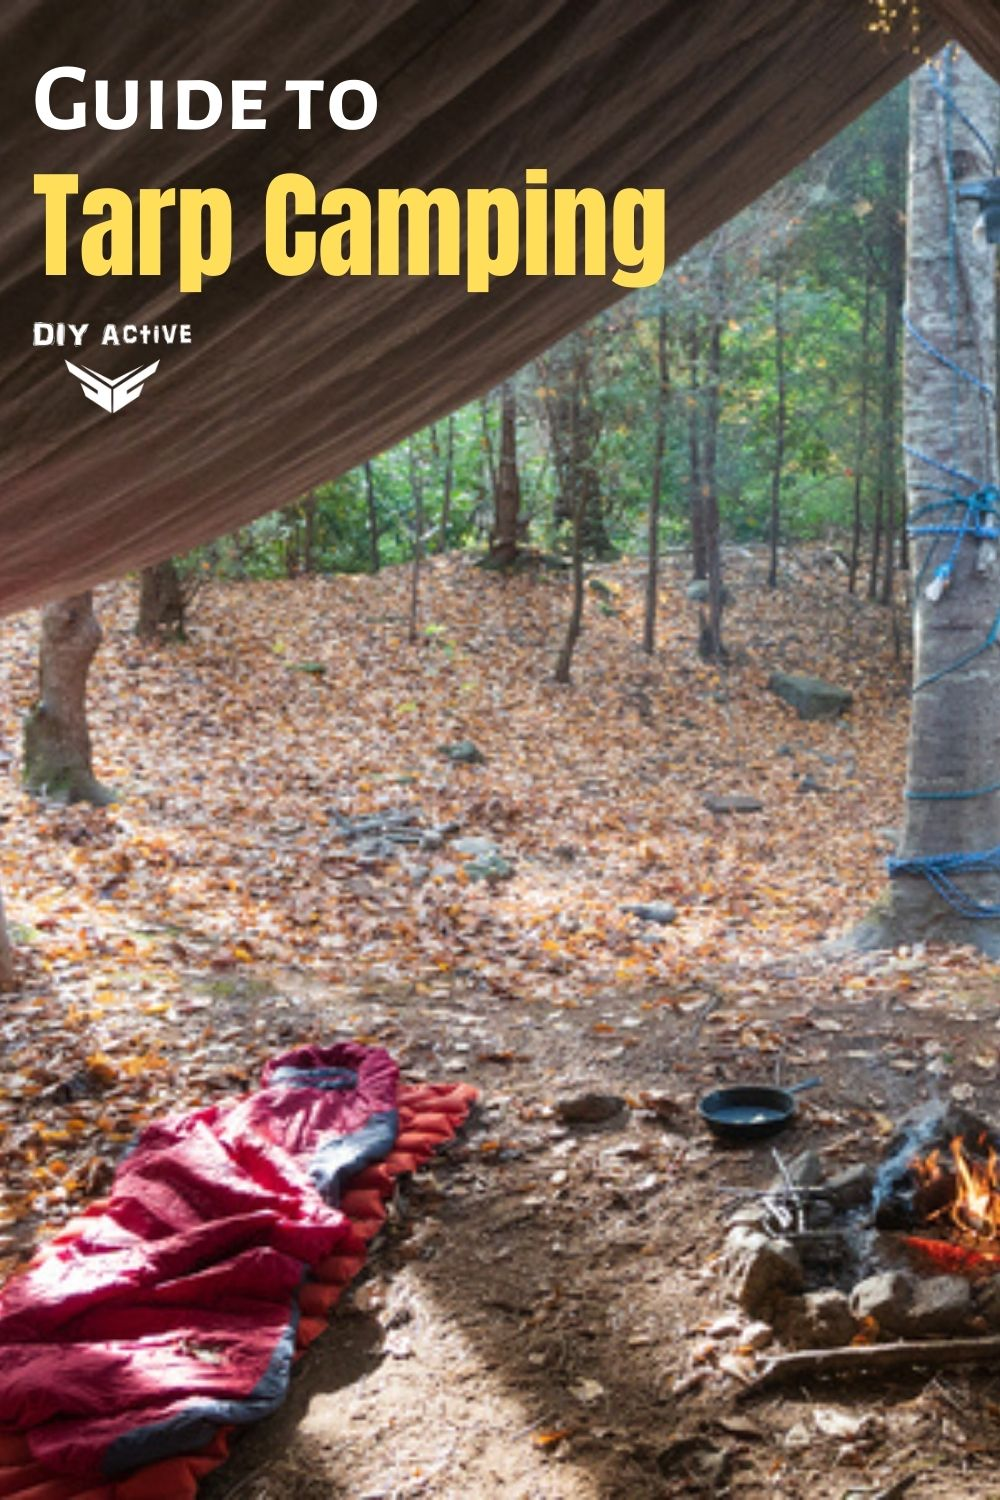 Guide to Tarp Camping: Who Could Benefit, Reasons, & Tips